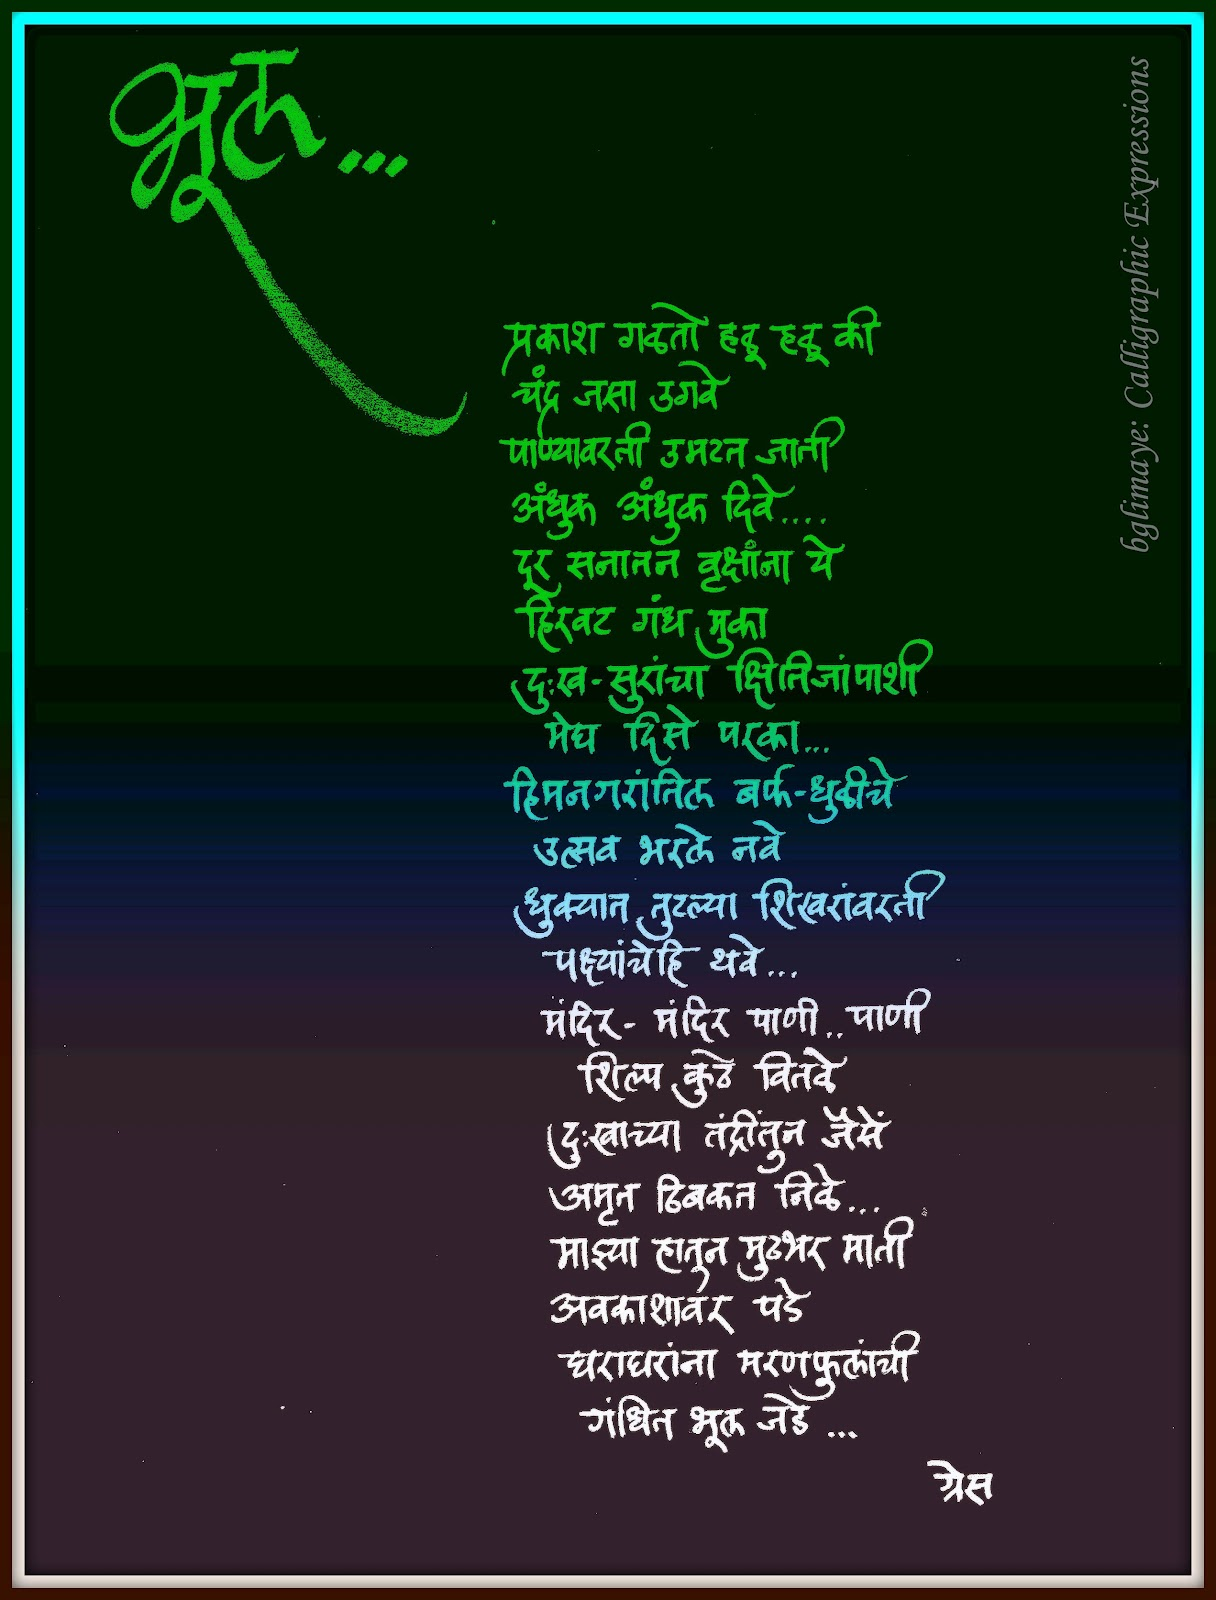 calligraphic expressions by b g limaye calligraphy  23 04 2012